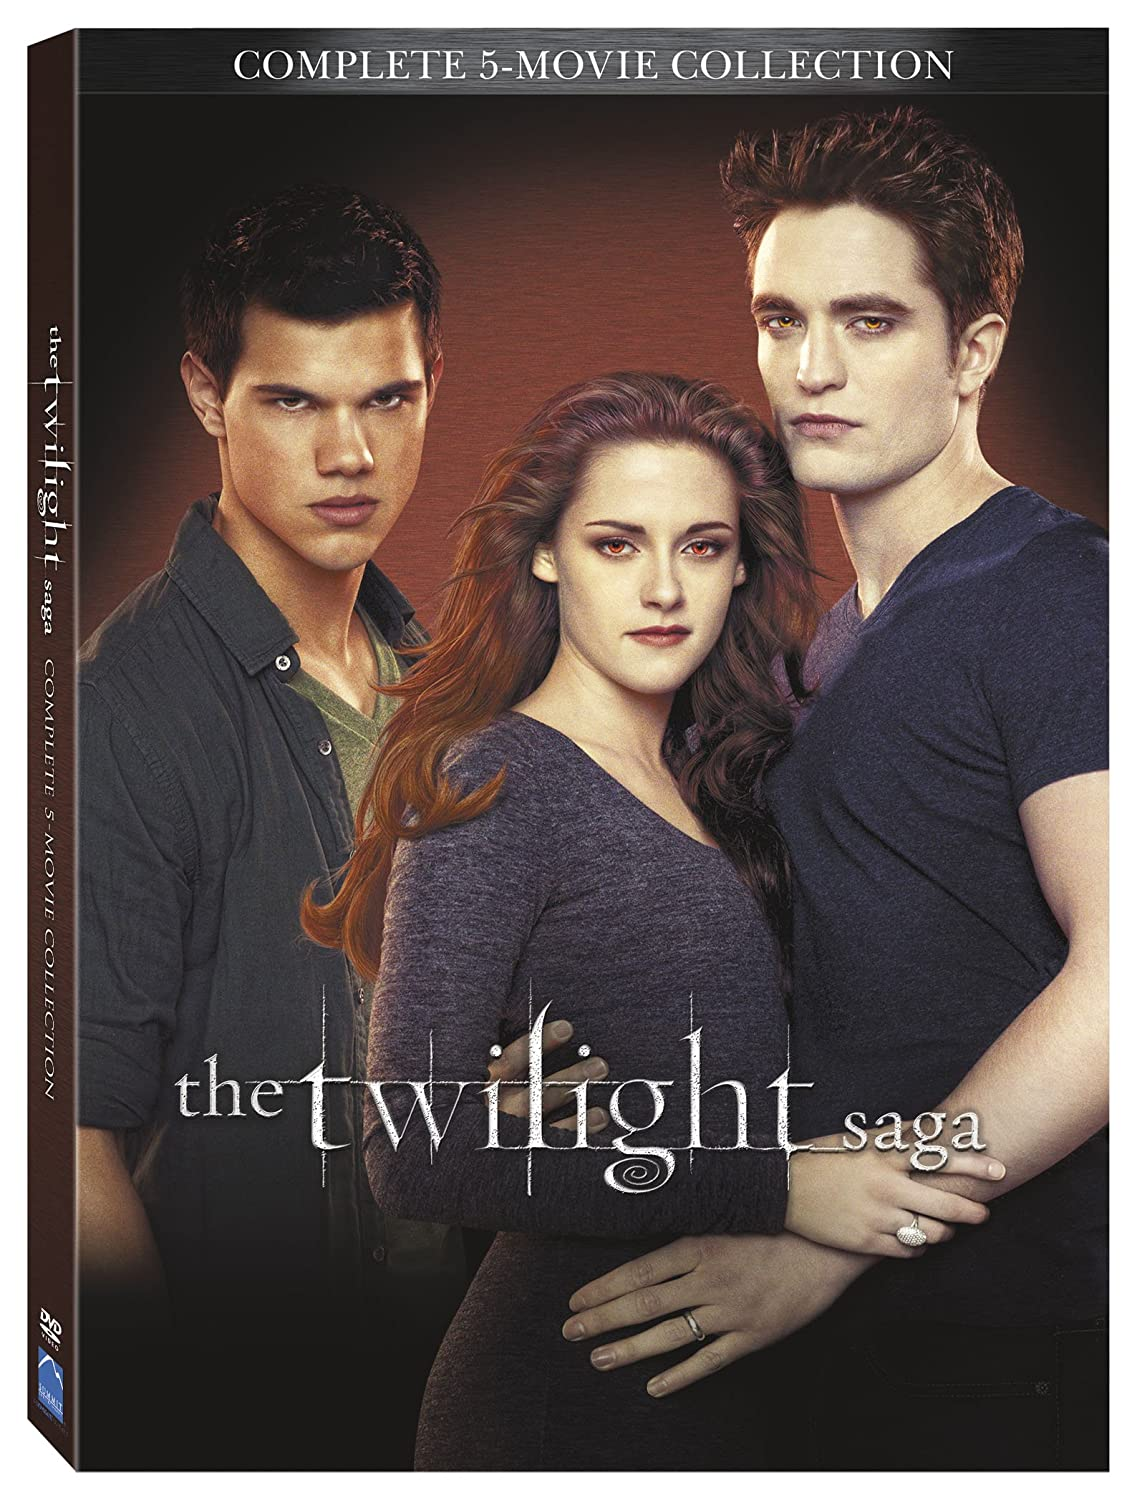 the twilight saga complete movies series 1 2 3 4 5 collection boxed dvd set new ebay. Black Bedroom Furniture Sets. Home Design Ideas